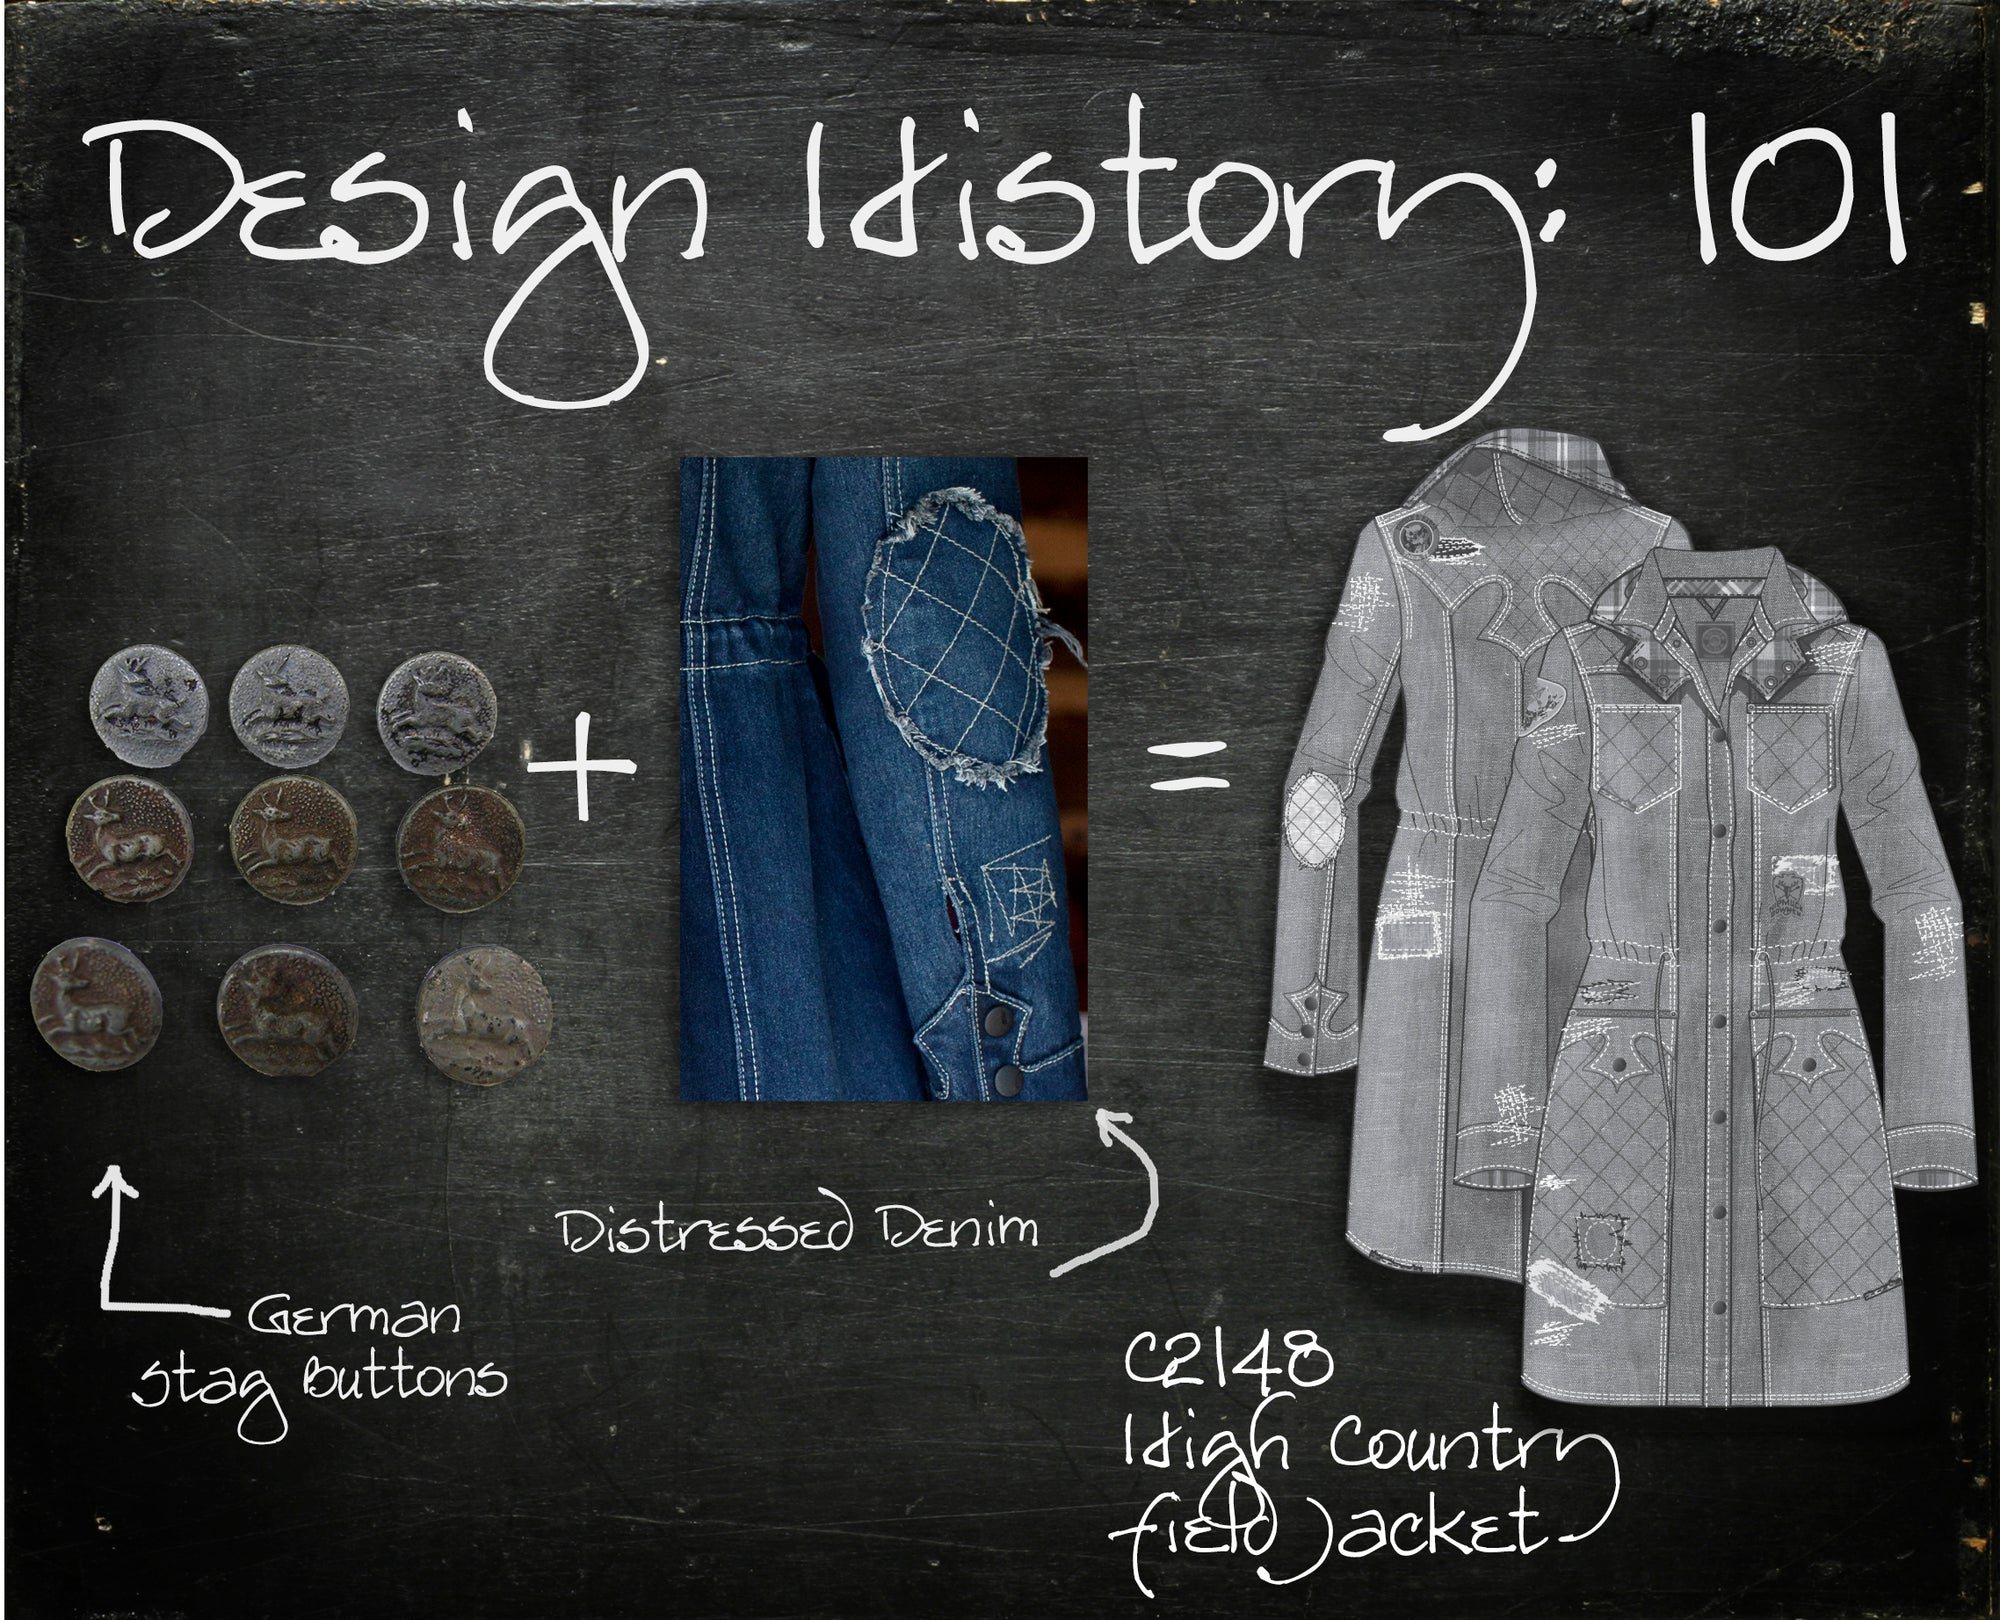 Design History 101: High Country Field Jacket